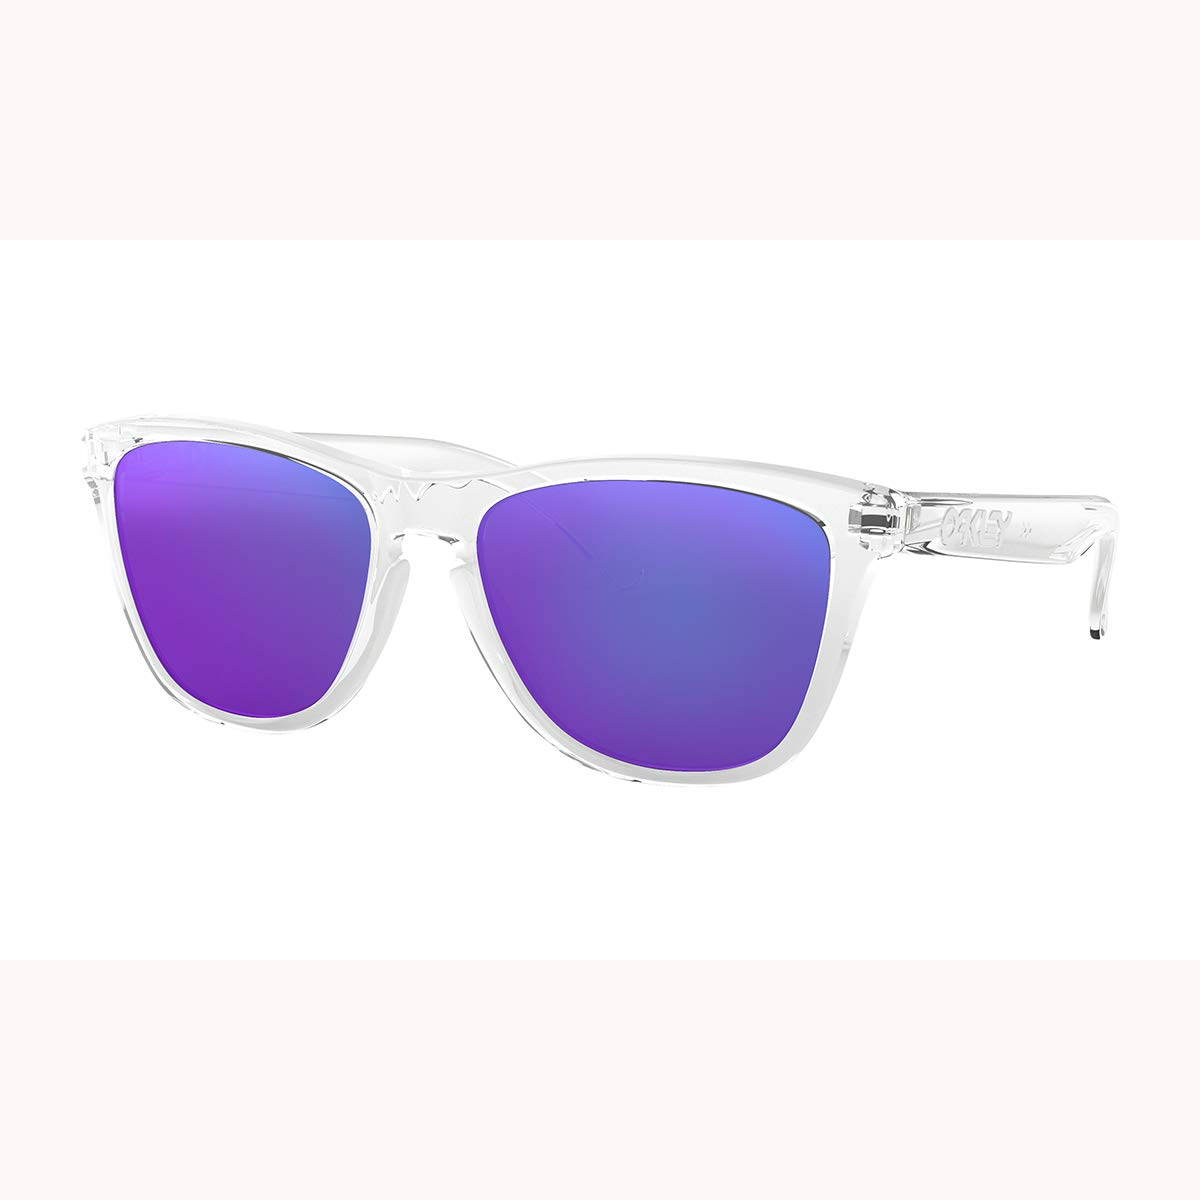 Oakley Men's OO9013 Frogskins Square Sunglasses, Polished Clear/Violet Iridium, 55 mm by Oakley